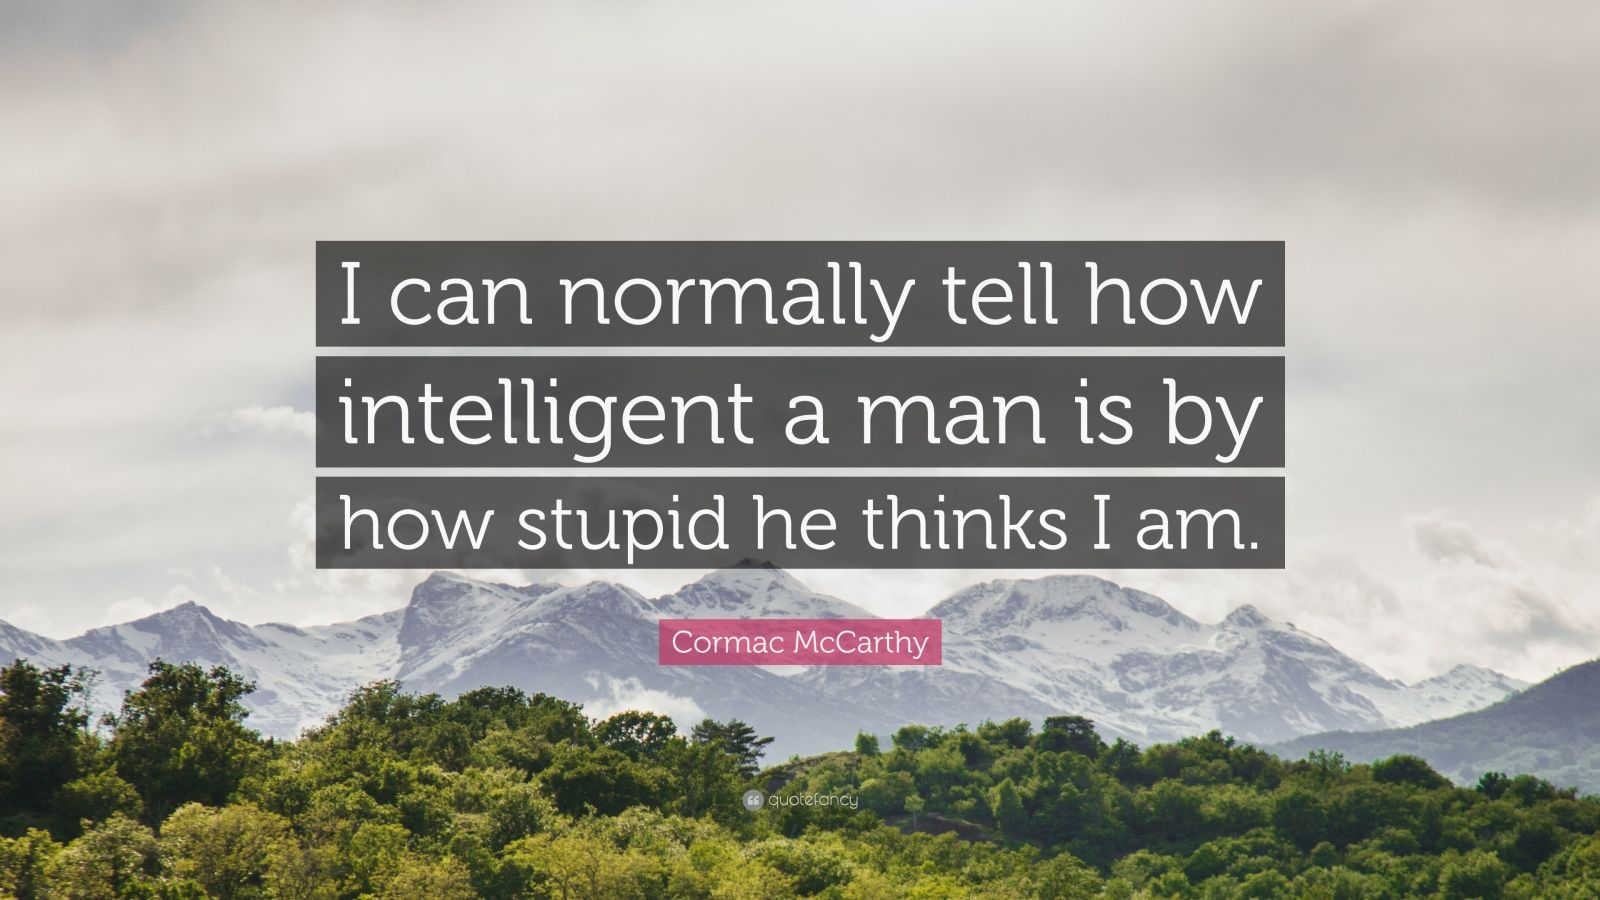 """Cormac McCarthy Quote: """"I can normally tell how intelligent a man is by how stupid he thinks I am."""""""